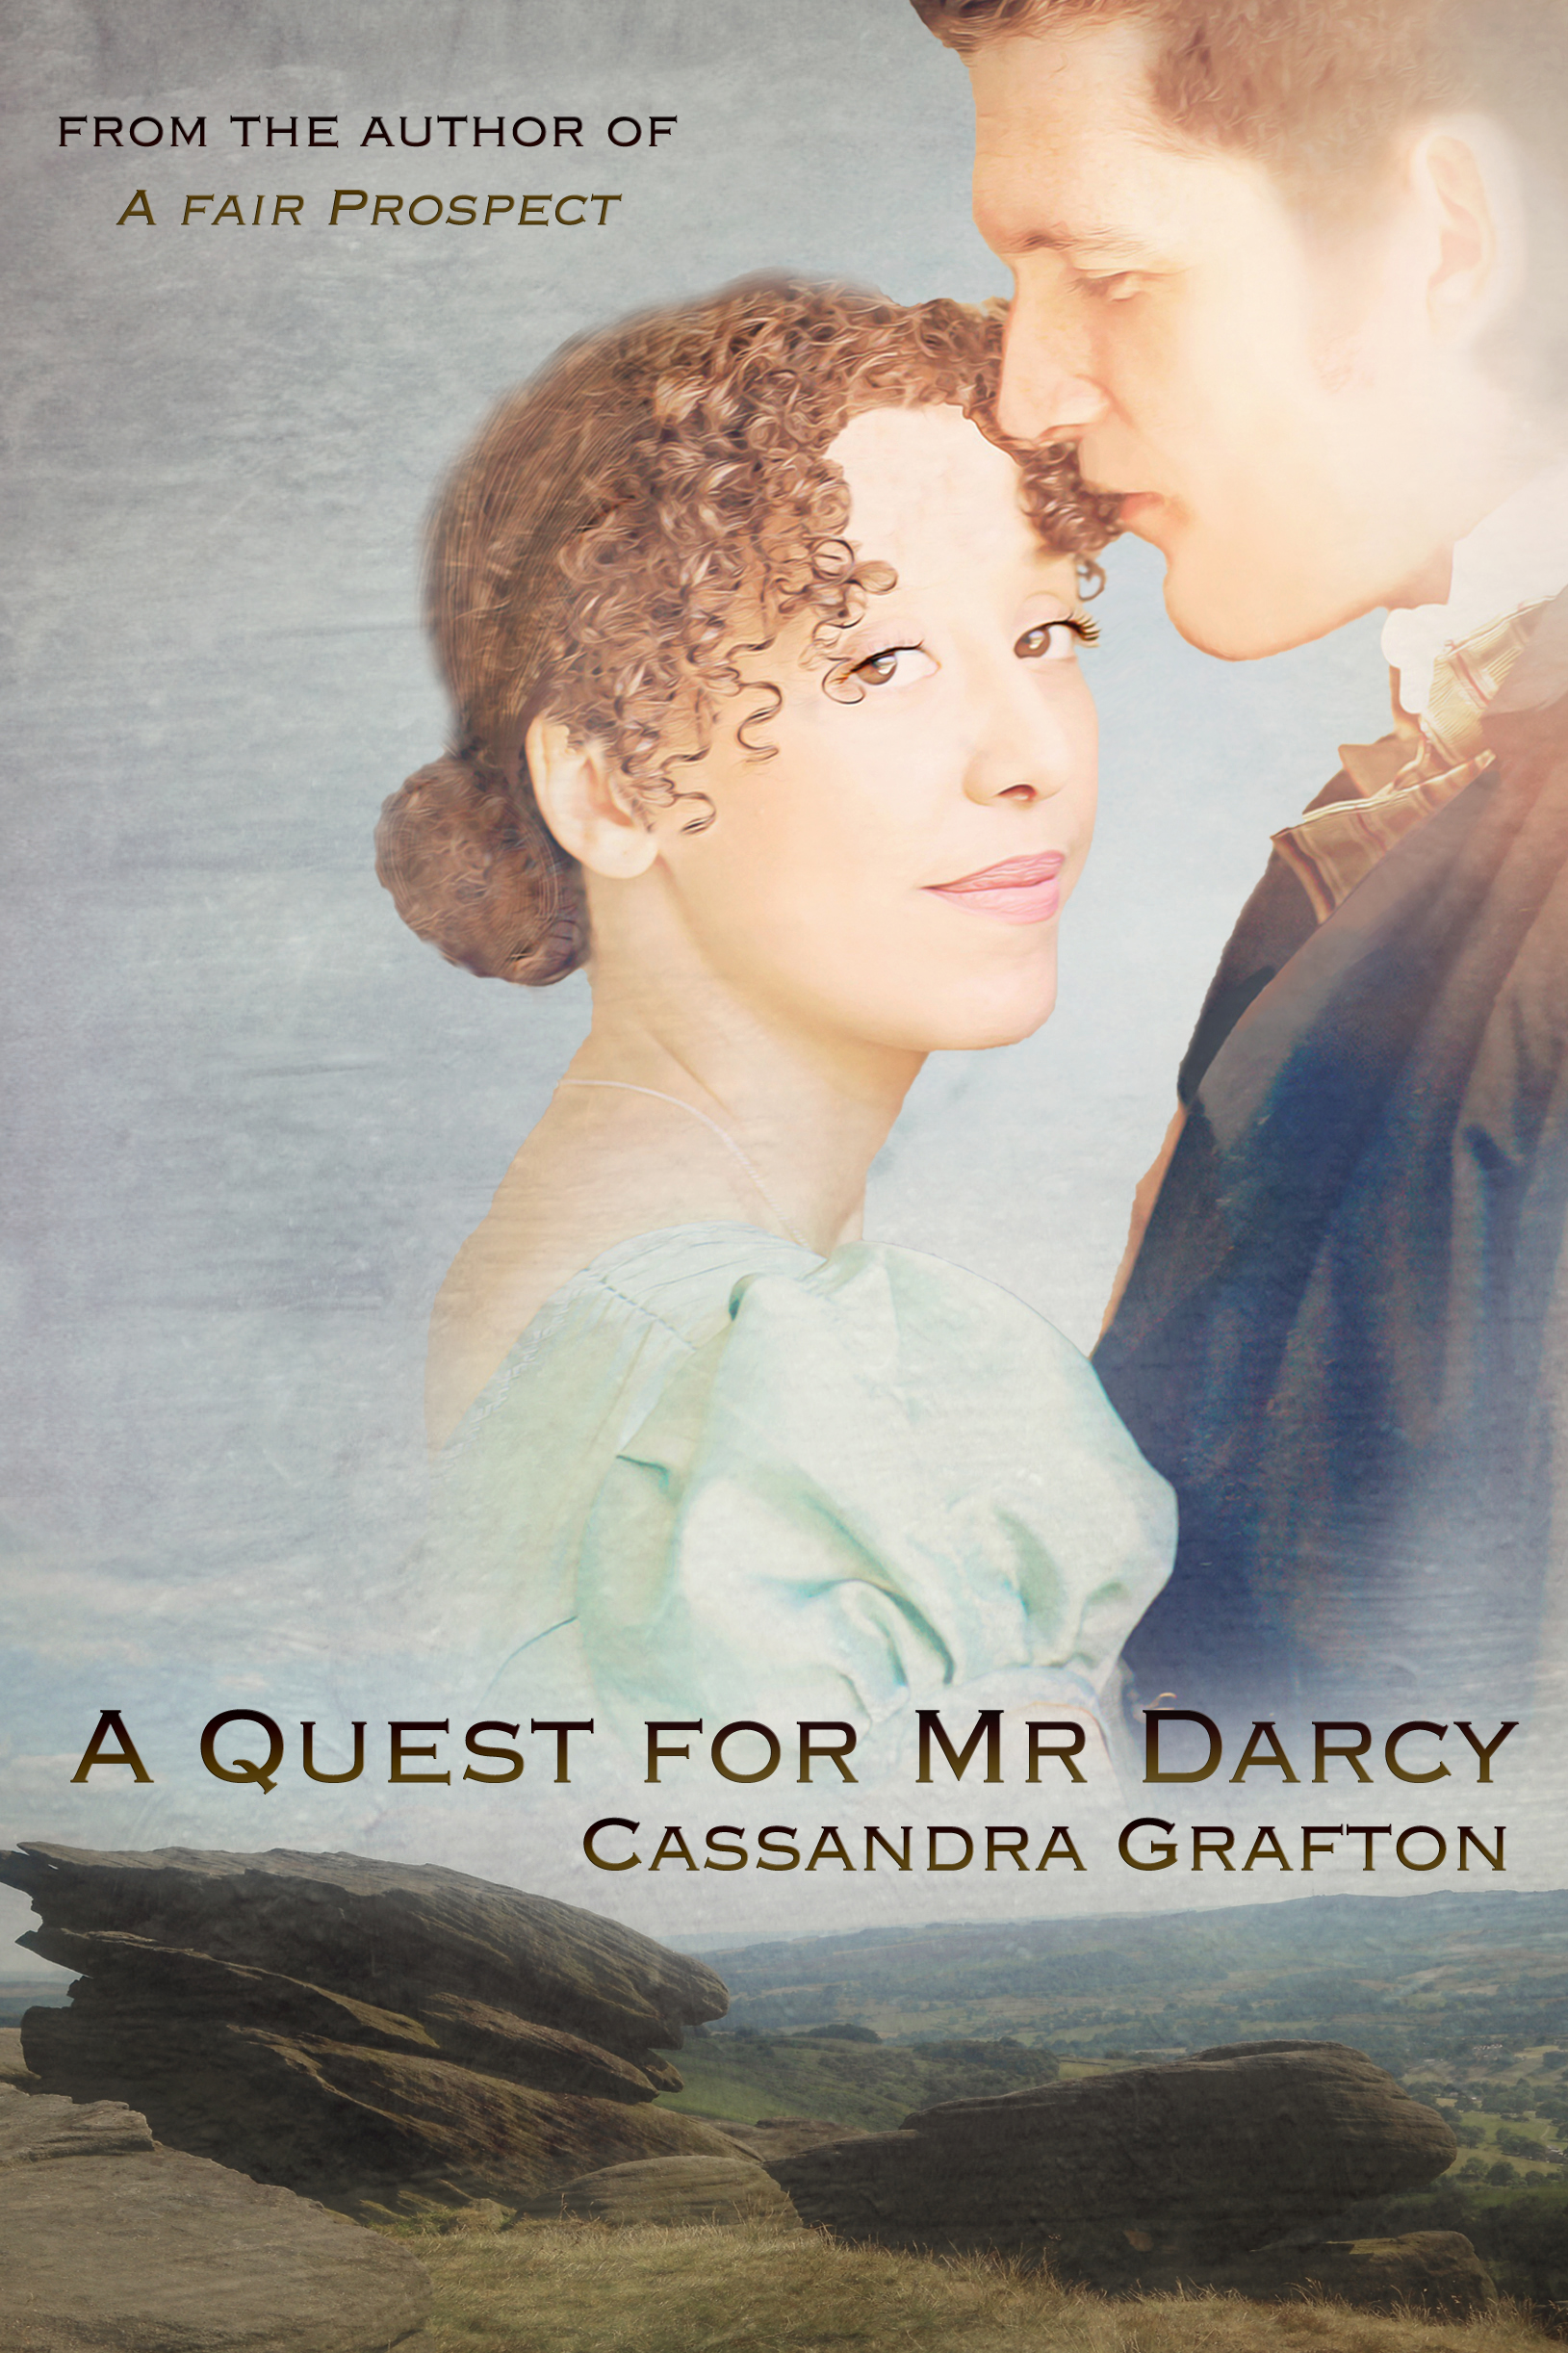 A Quest for Mr. Darcy by Cassandra Grafton